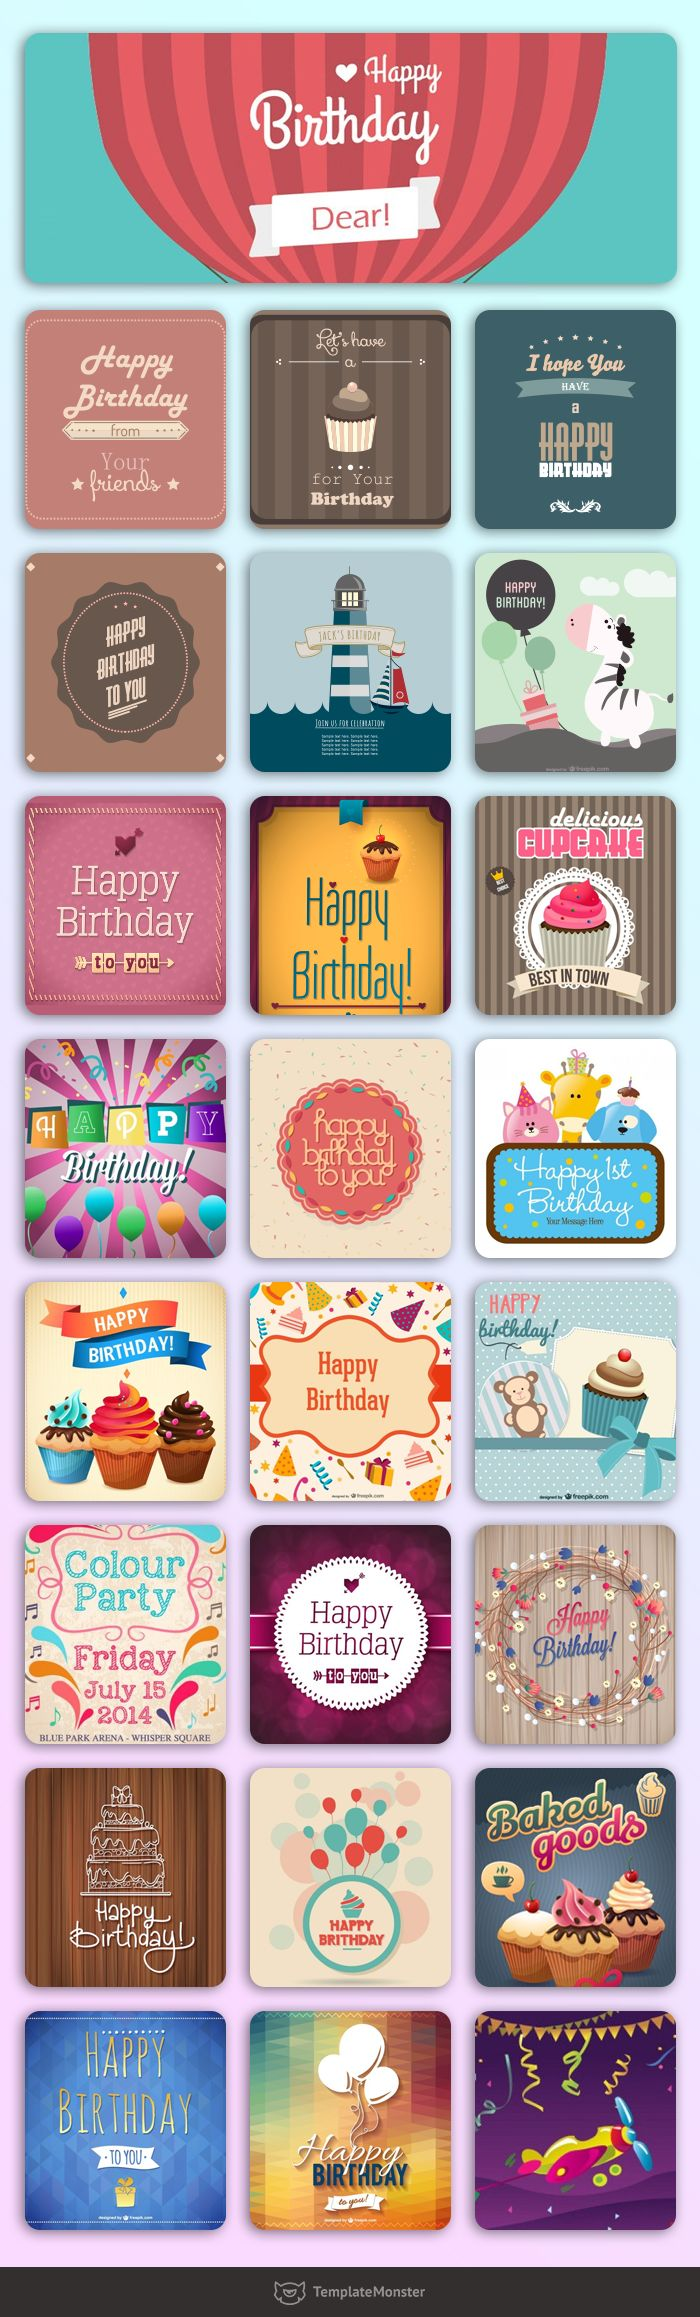 Download for FREE cool vector Postcards. Make this Birthday party very special. #postcard #postcarddesign #freeposcardmockup #postcardvector #birthdaycards https://www.templatemonster.com/blog/birthday-freebies-vector-postcards/